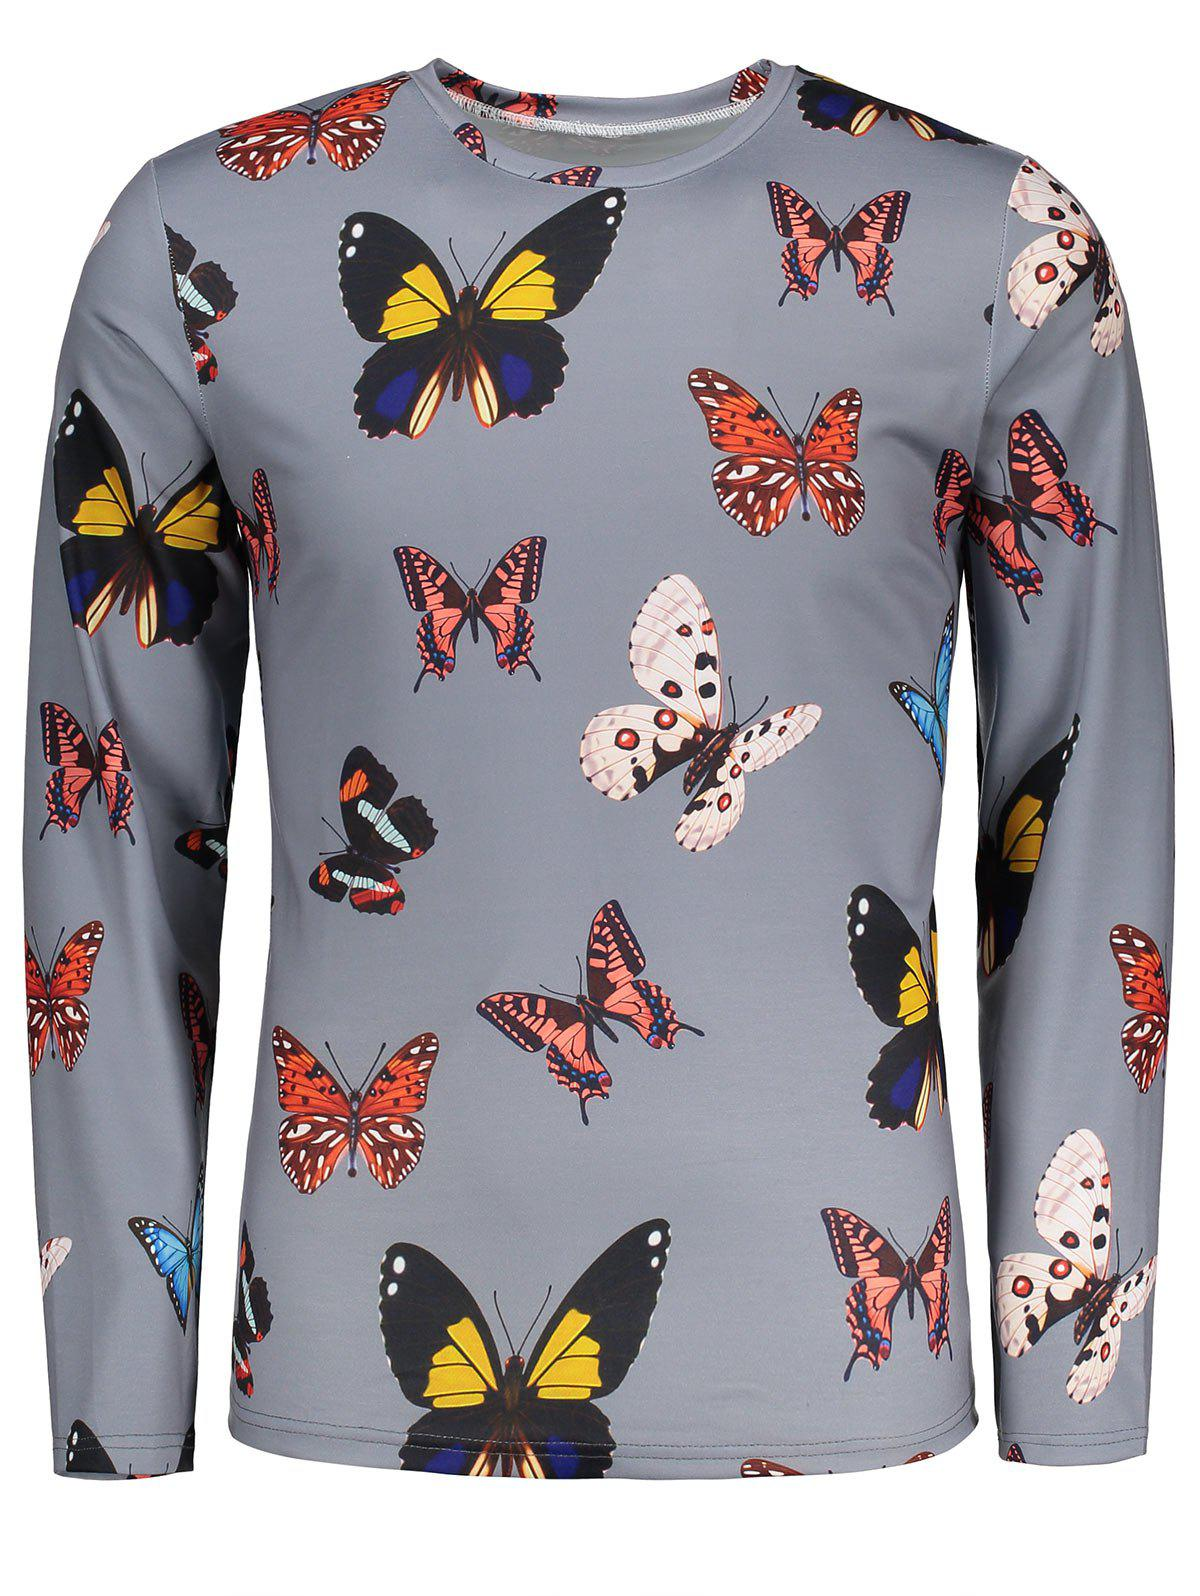 Colorful Butterflies Pattern Crew Neck T-shirt - GRAY 2XL